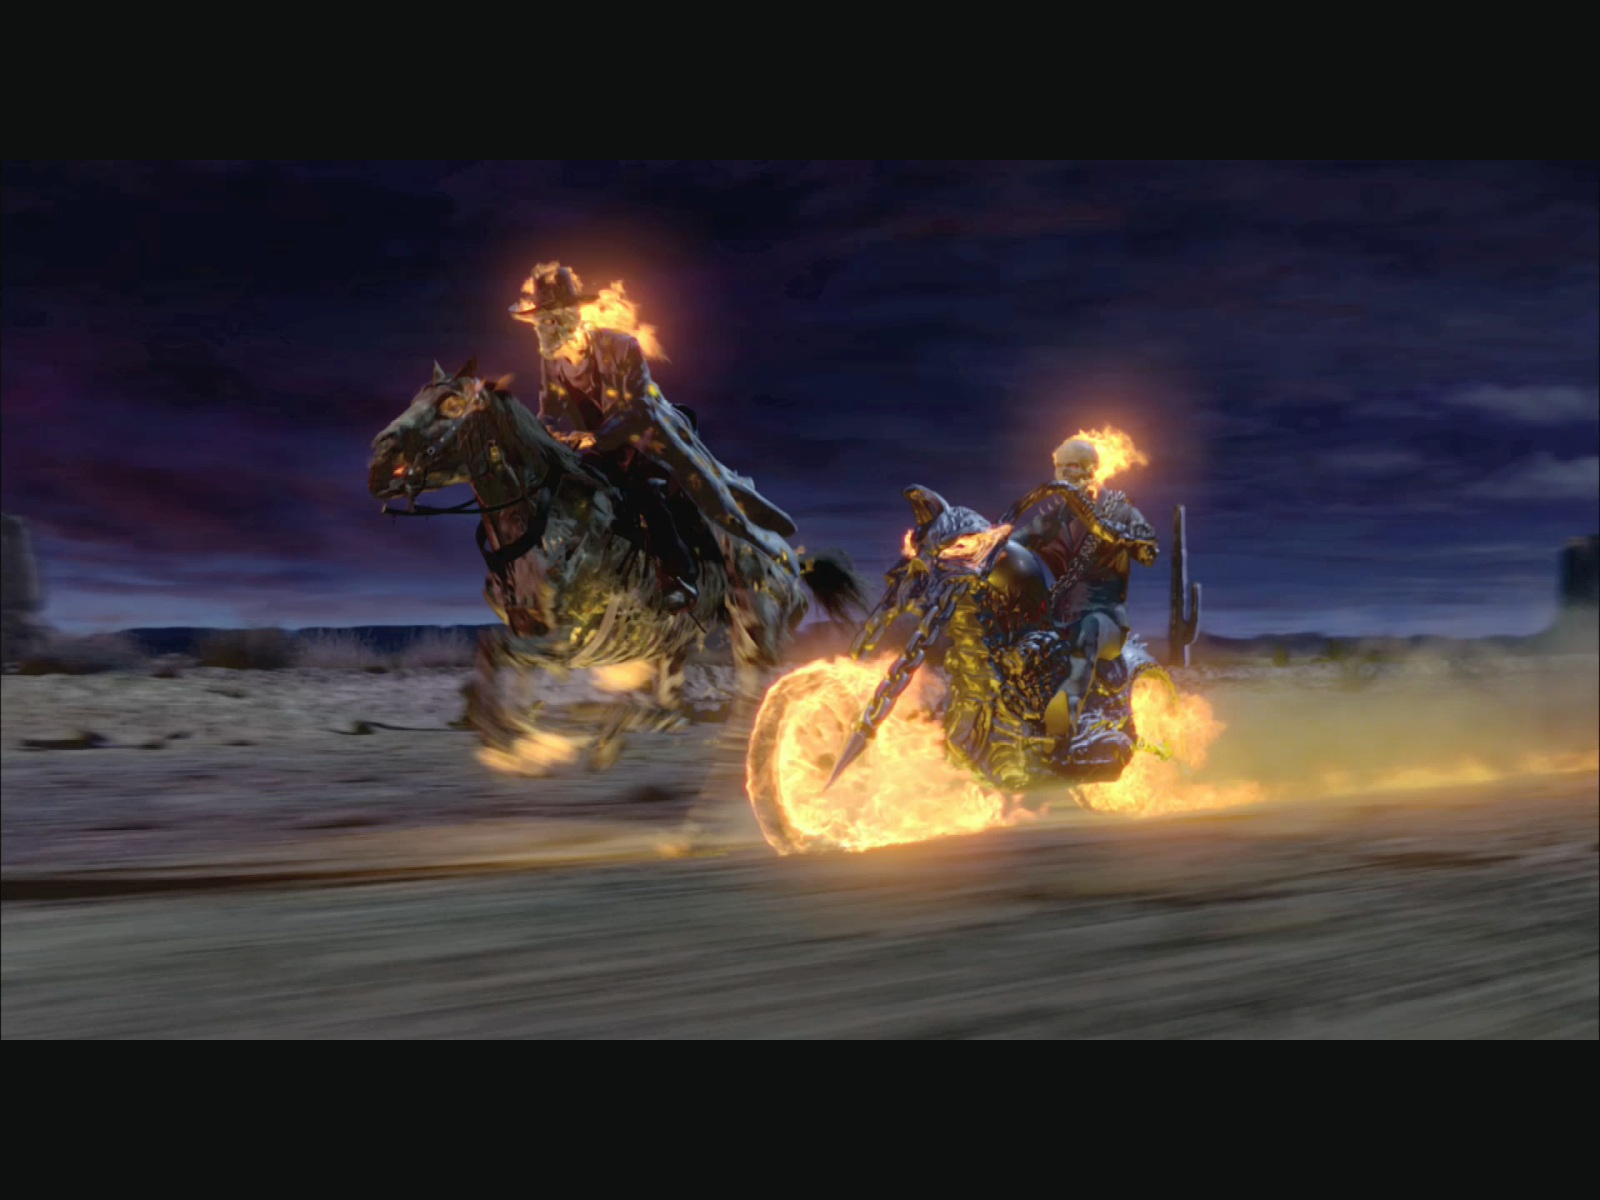 for forums [urlhttpwwwdesivalleycomghost rider hd wallpaper 1600x1200